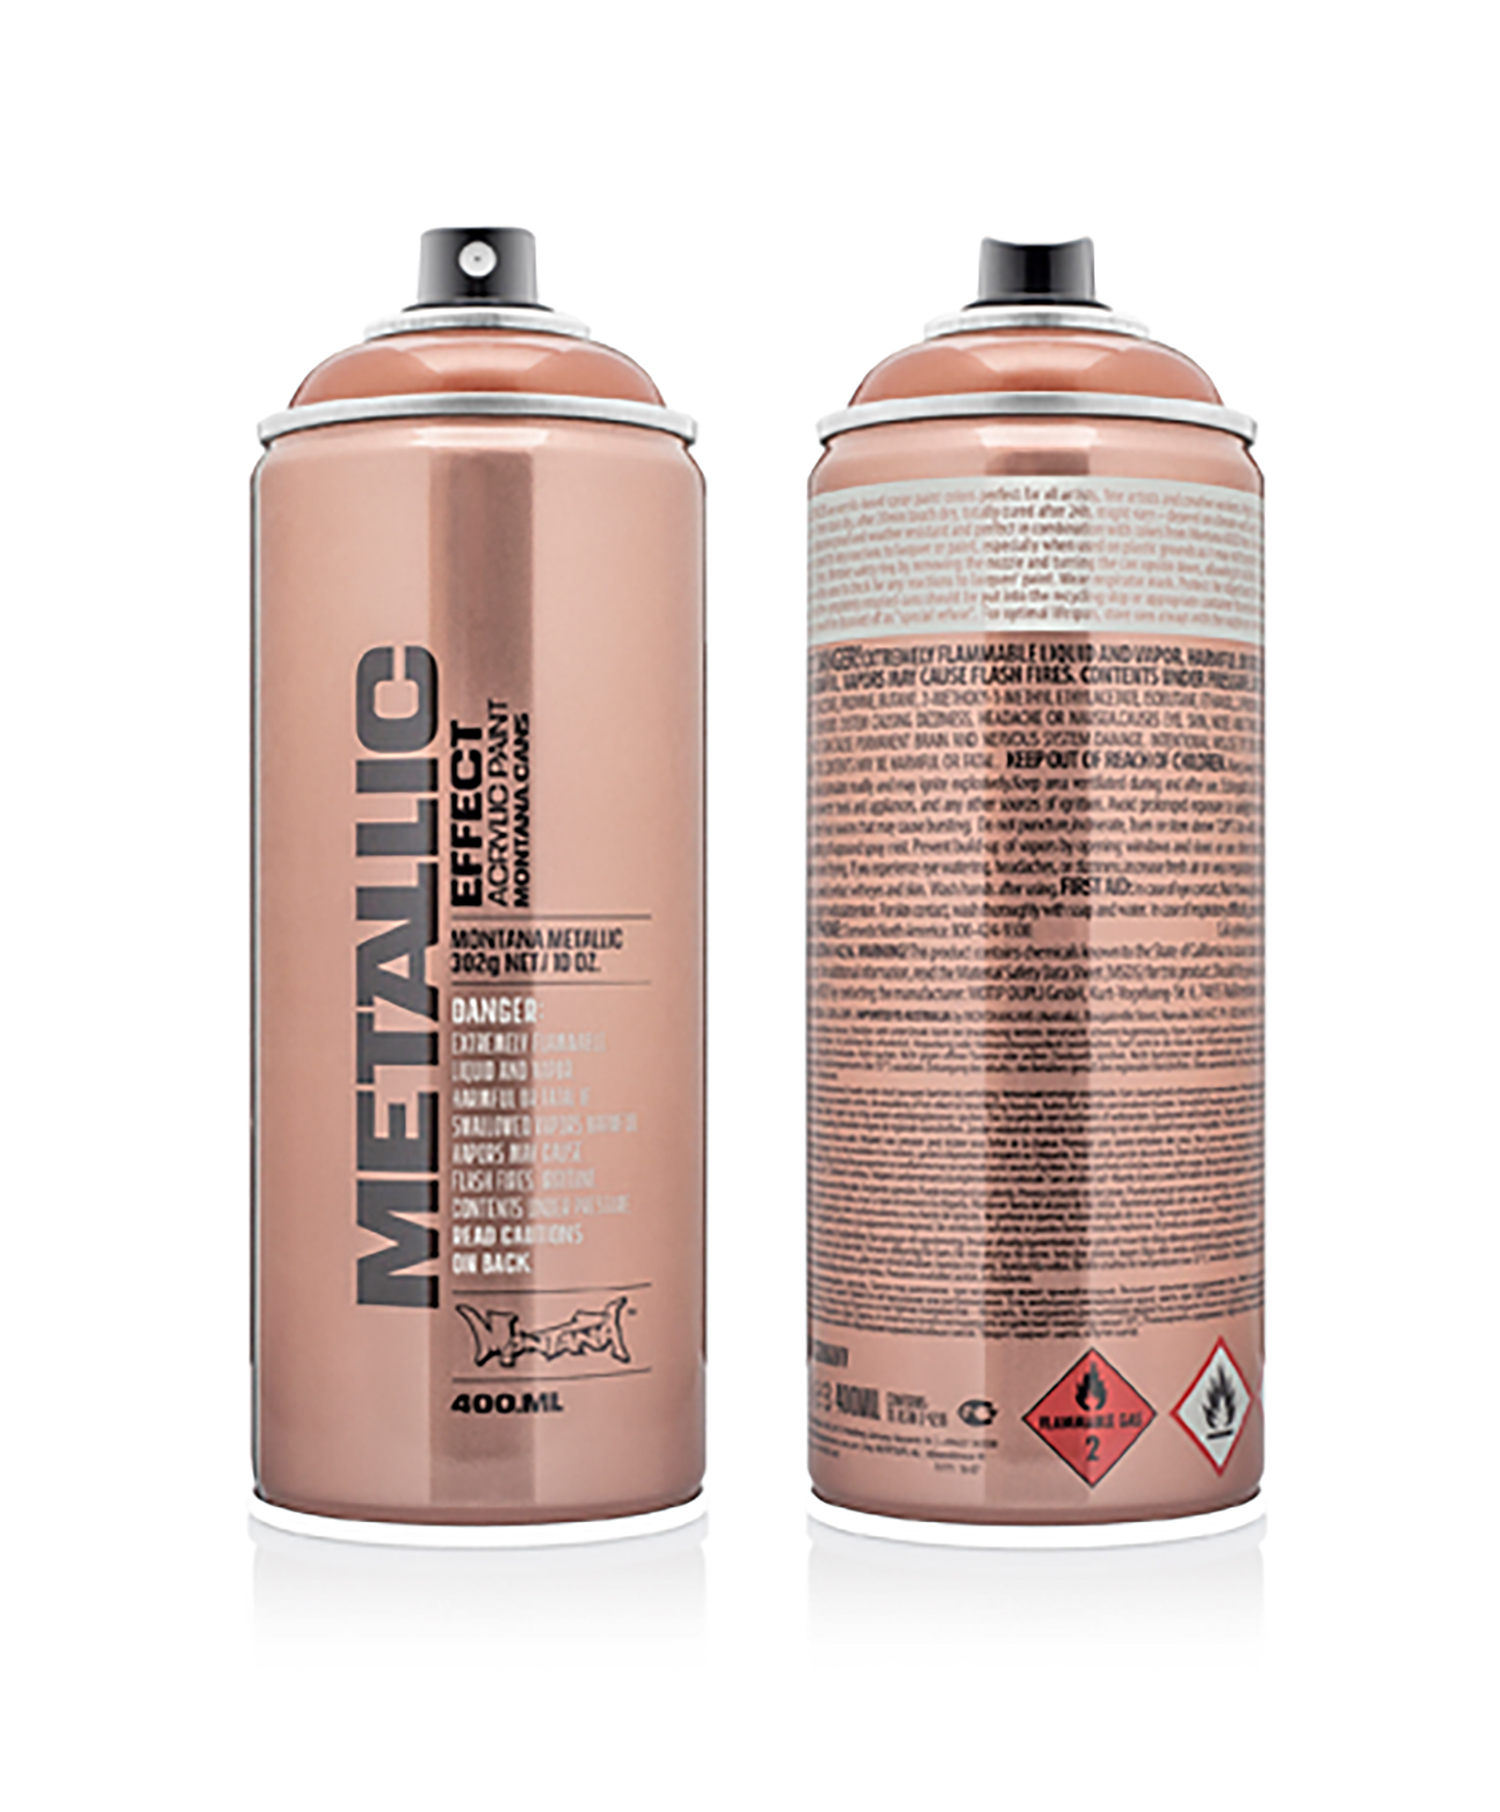 MONTANA-EFFECT-METALLIC-SPRAY-400ML_EMC2050